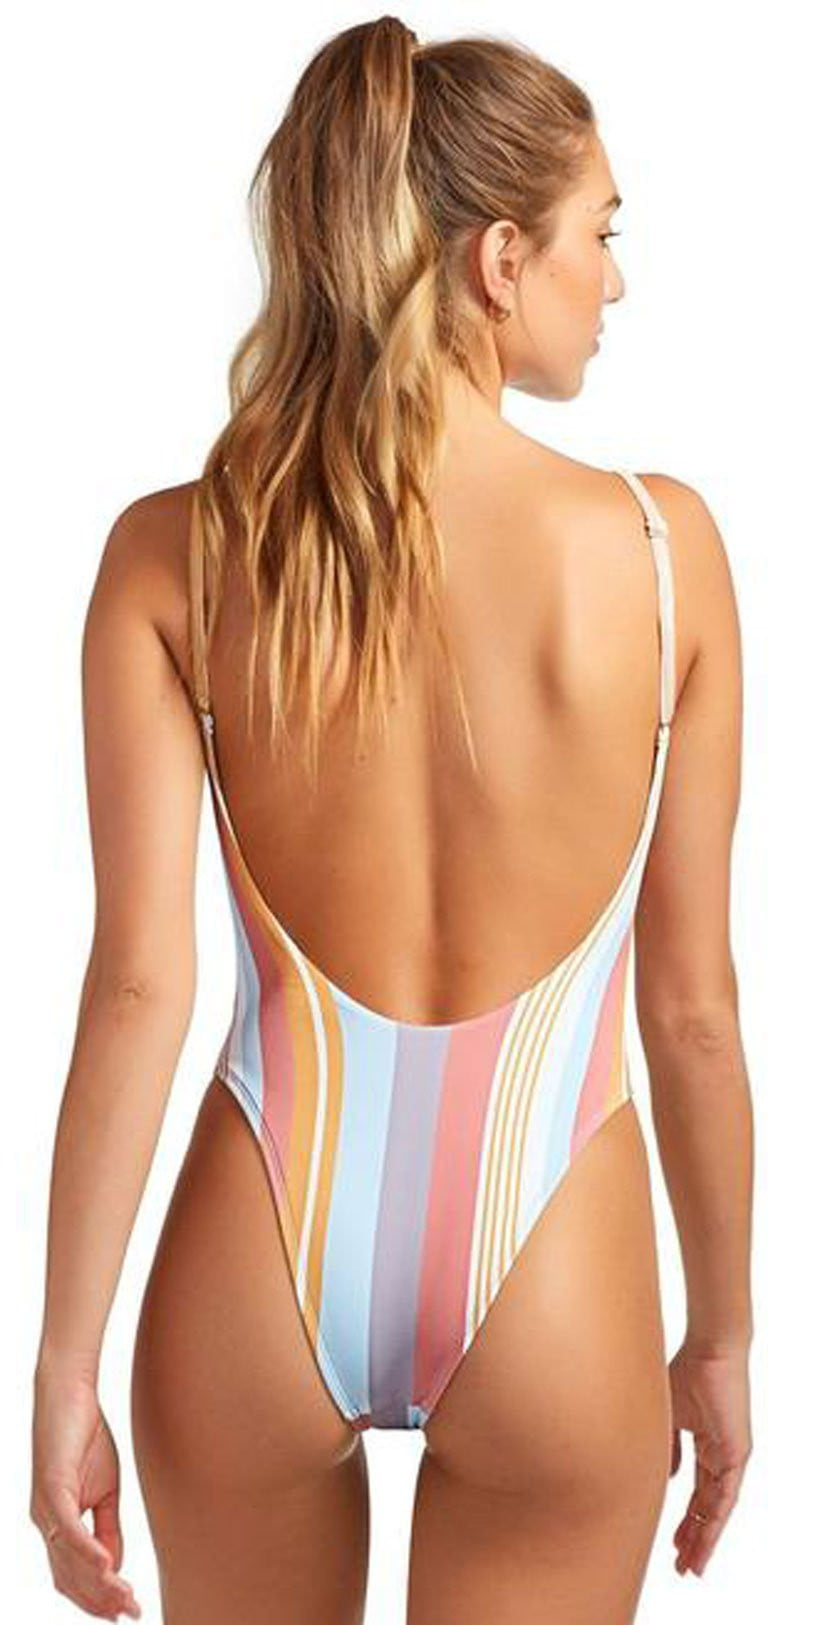 Vitamin A EcoRib Yasmeen One Piece in Verano Stripe Eco Rib 801M VRS: